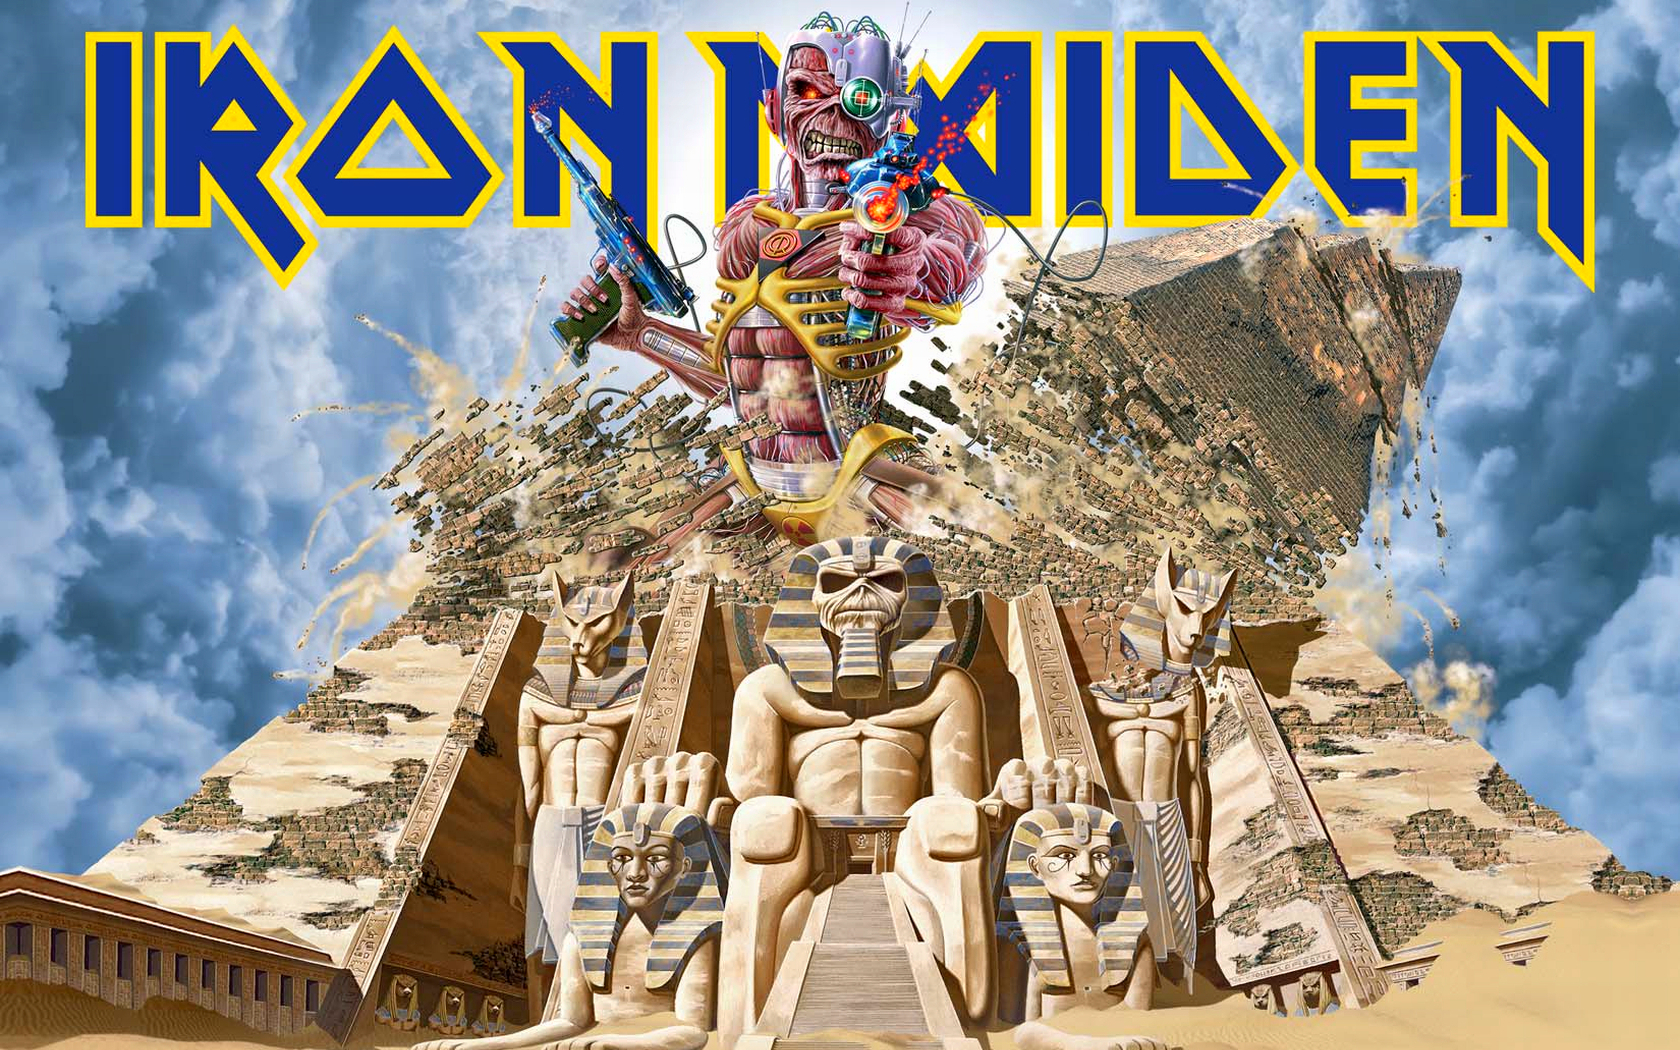 Iron Maiden Wallpaper and Background Image | 1680x1050 ...